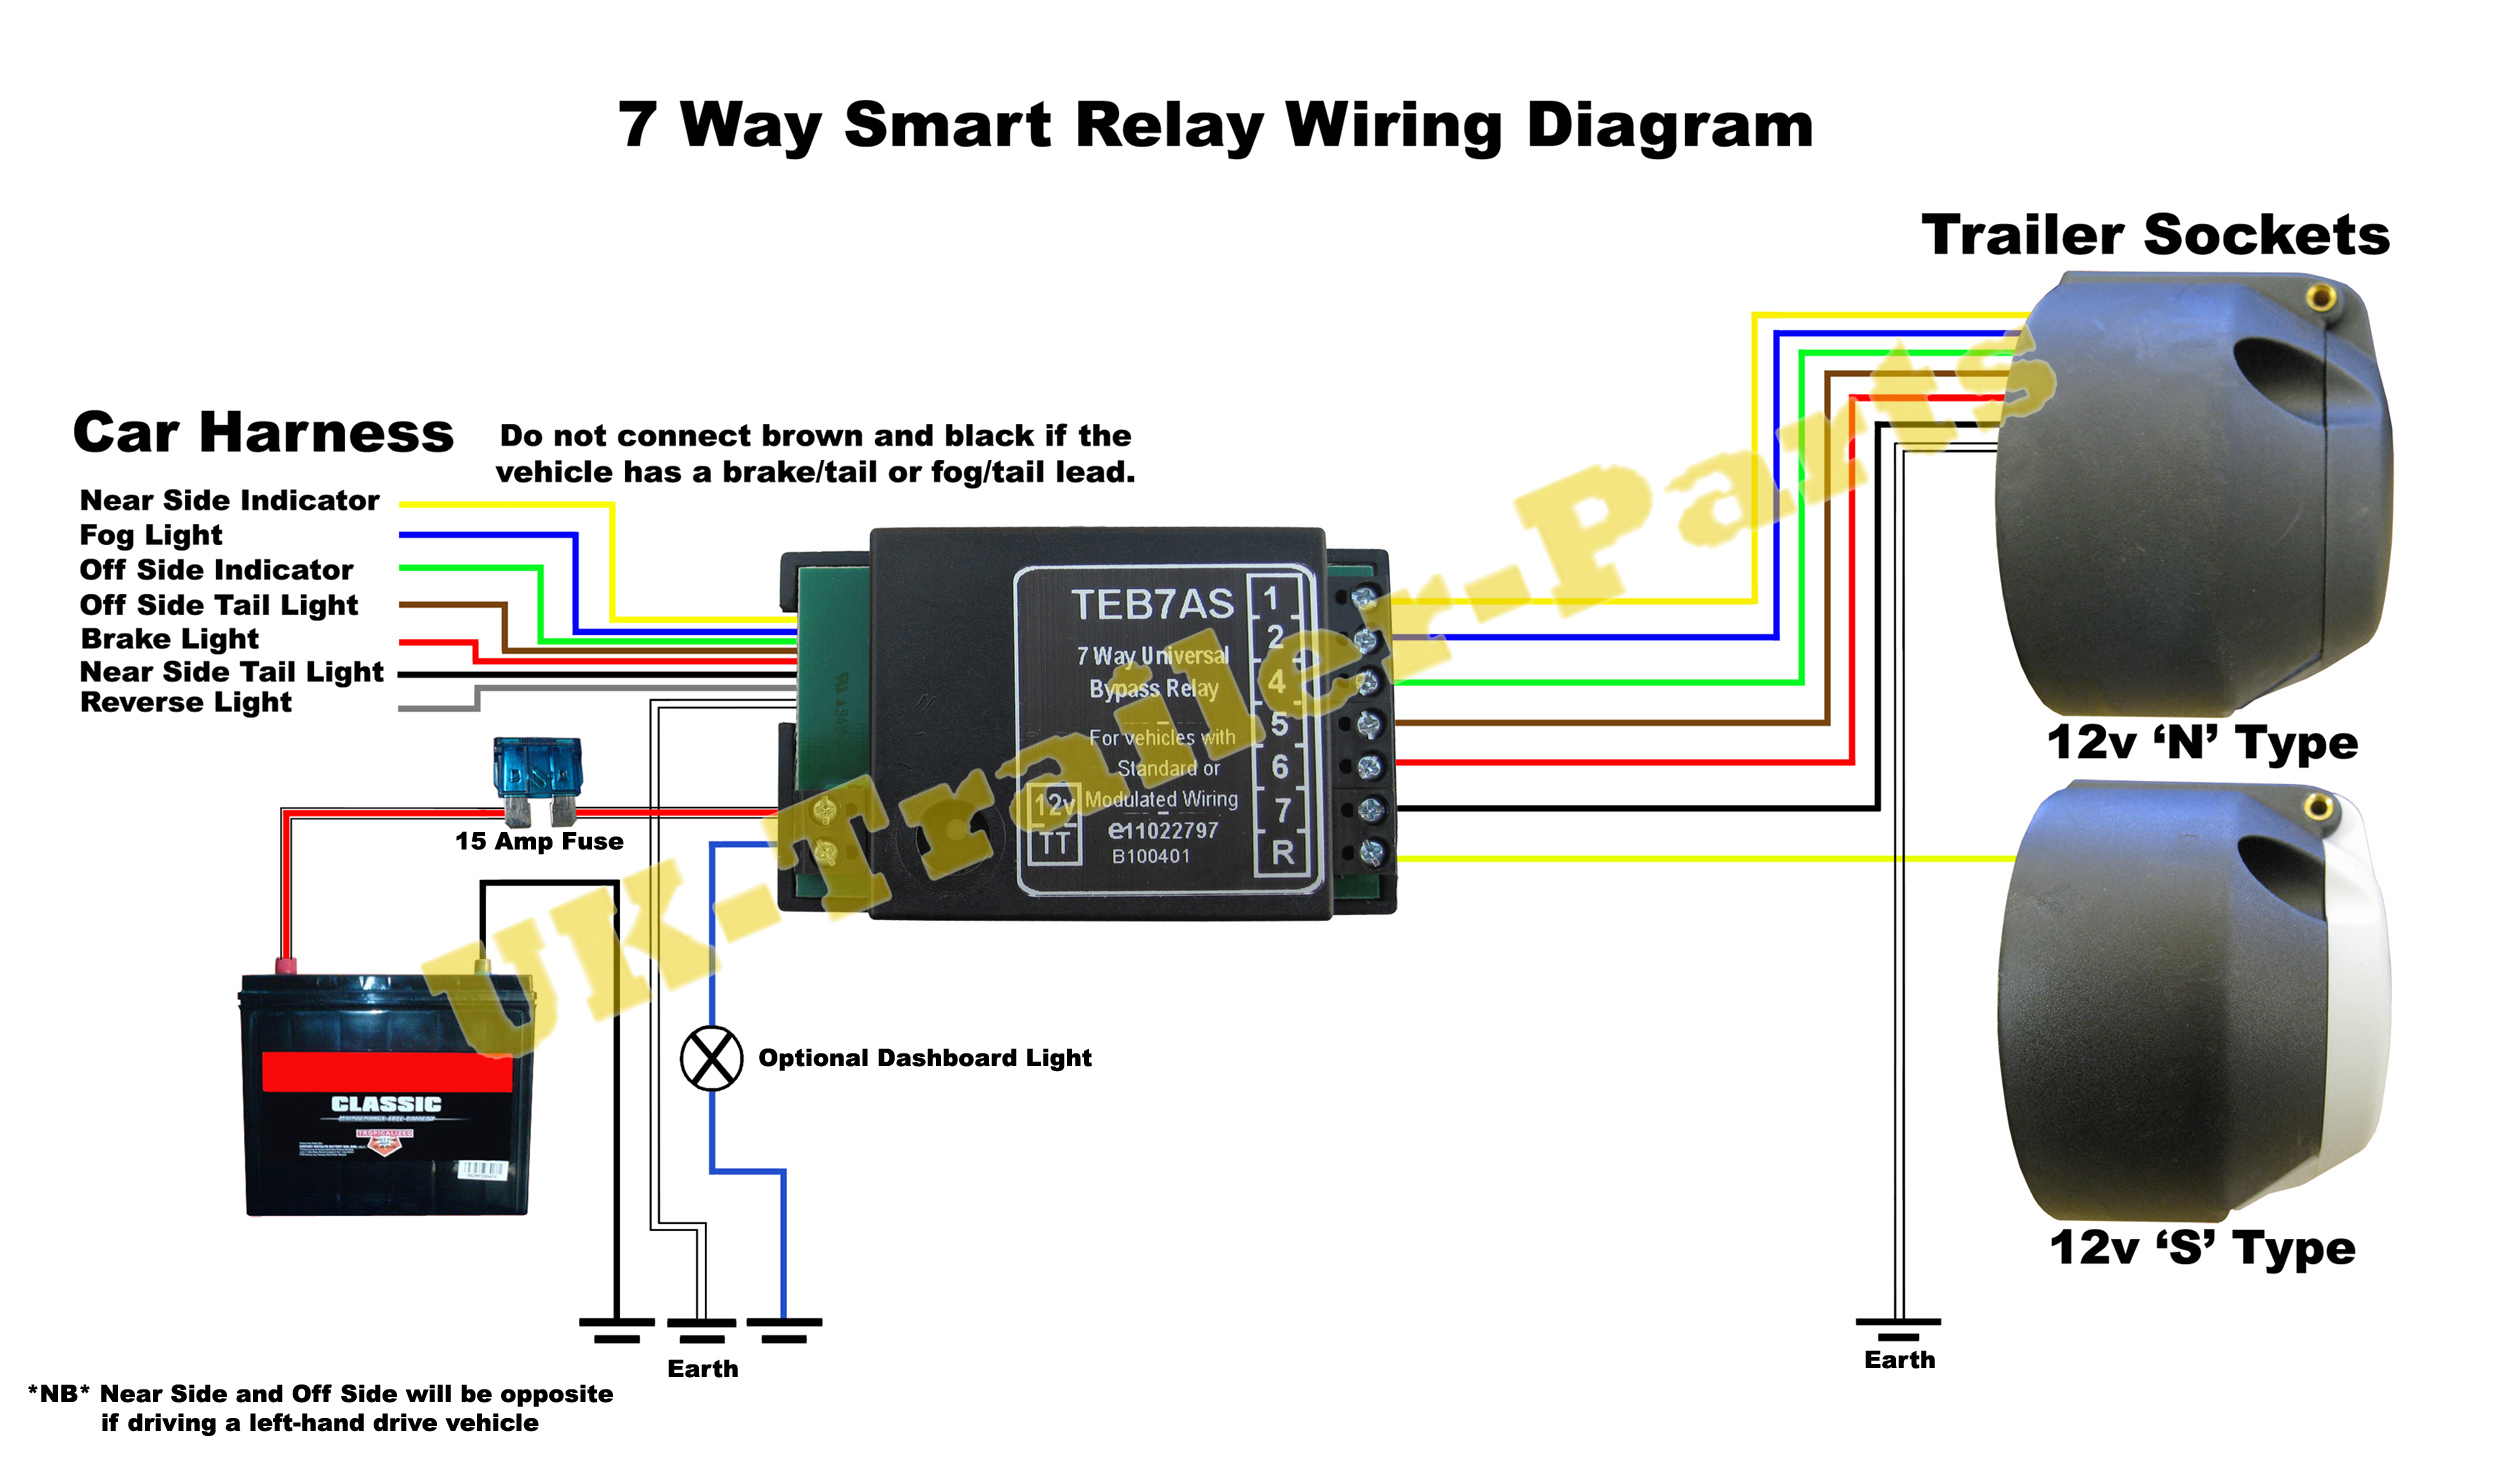 smart relay wiring diagram2 7 way universal bypass relay wiring diagram uk trailer parts vauxhall vectra towbar wiring diagram at aneh.co